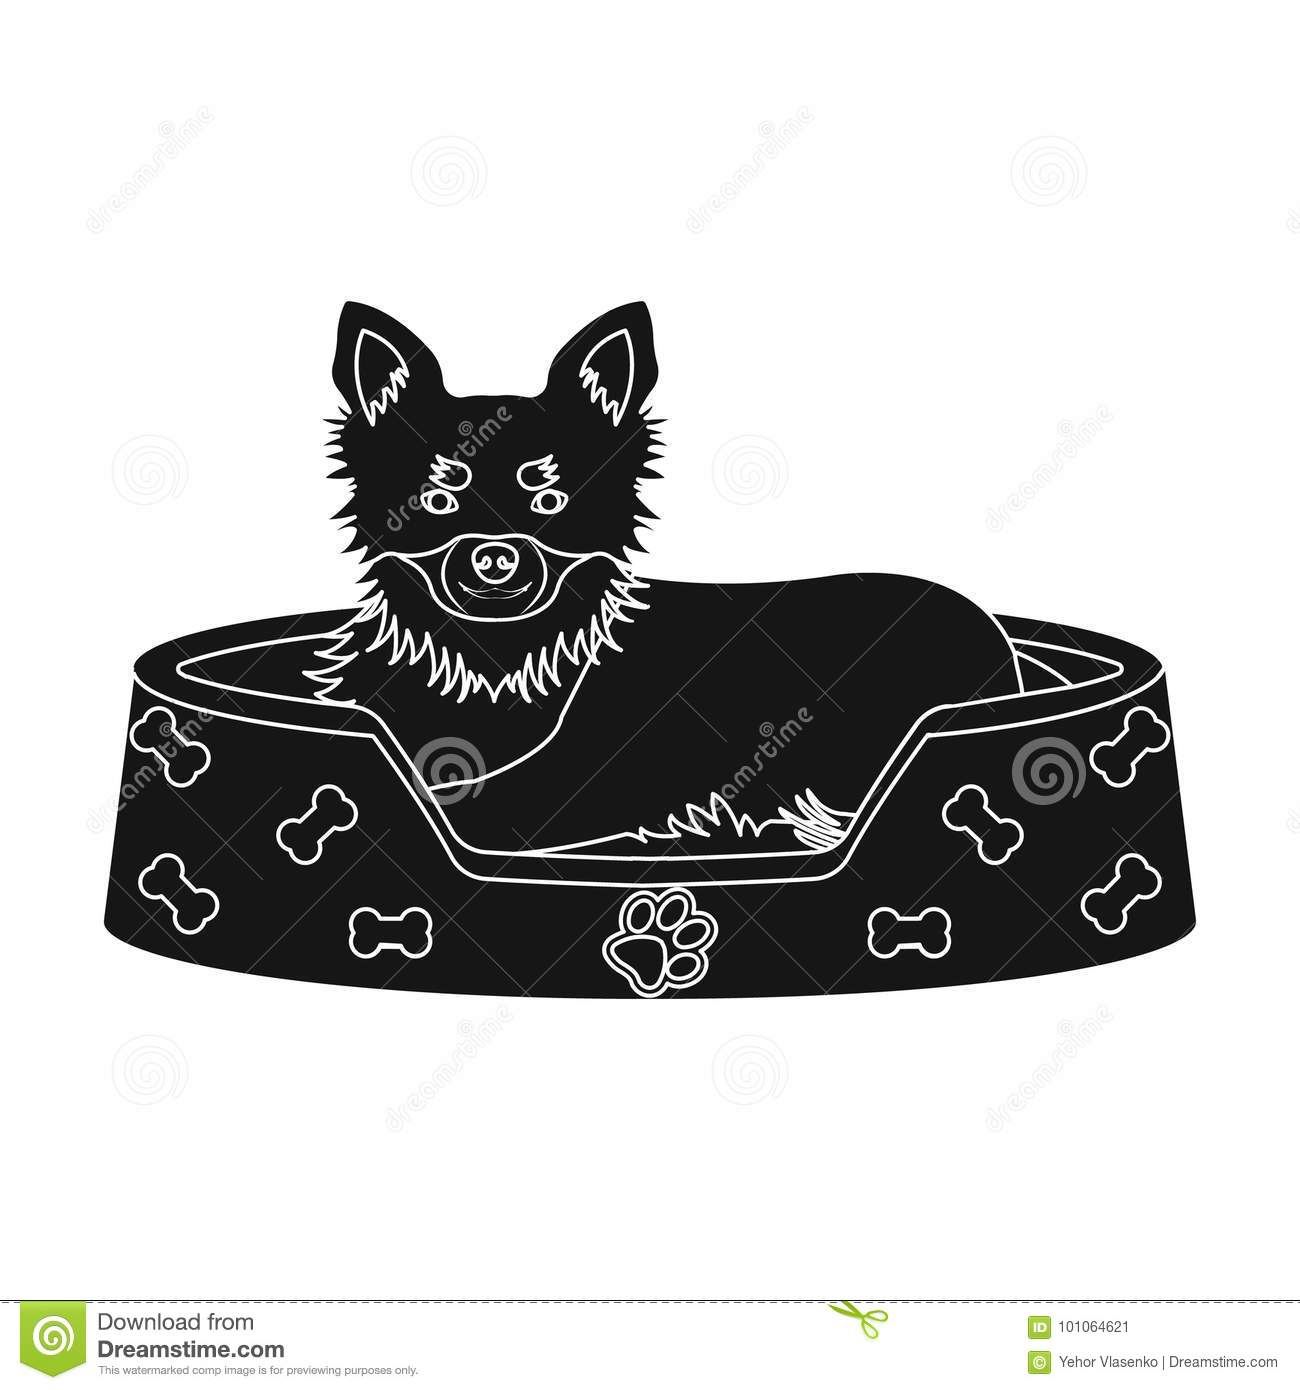 Lounger for a pet a sleeping place dogcare of a pet single icon lounger for a pet a sleeping place dogcare of a pet single icon in black style vector symbol stock illustration web buycottarizona